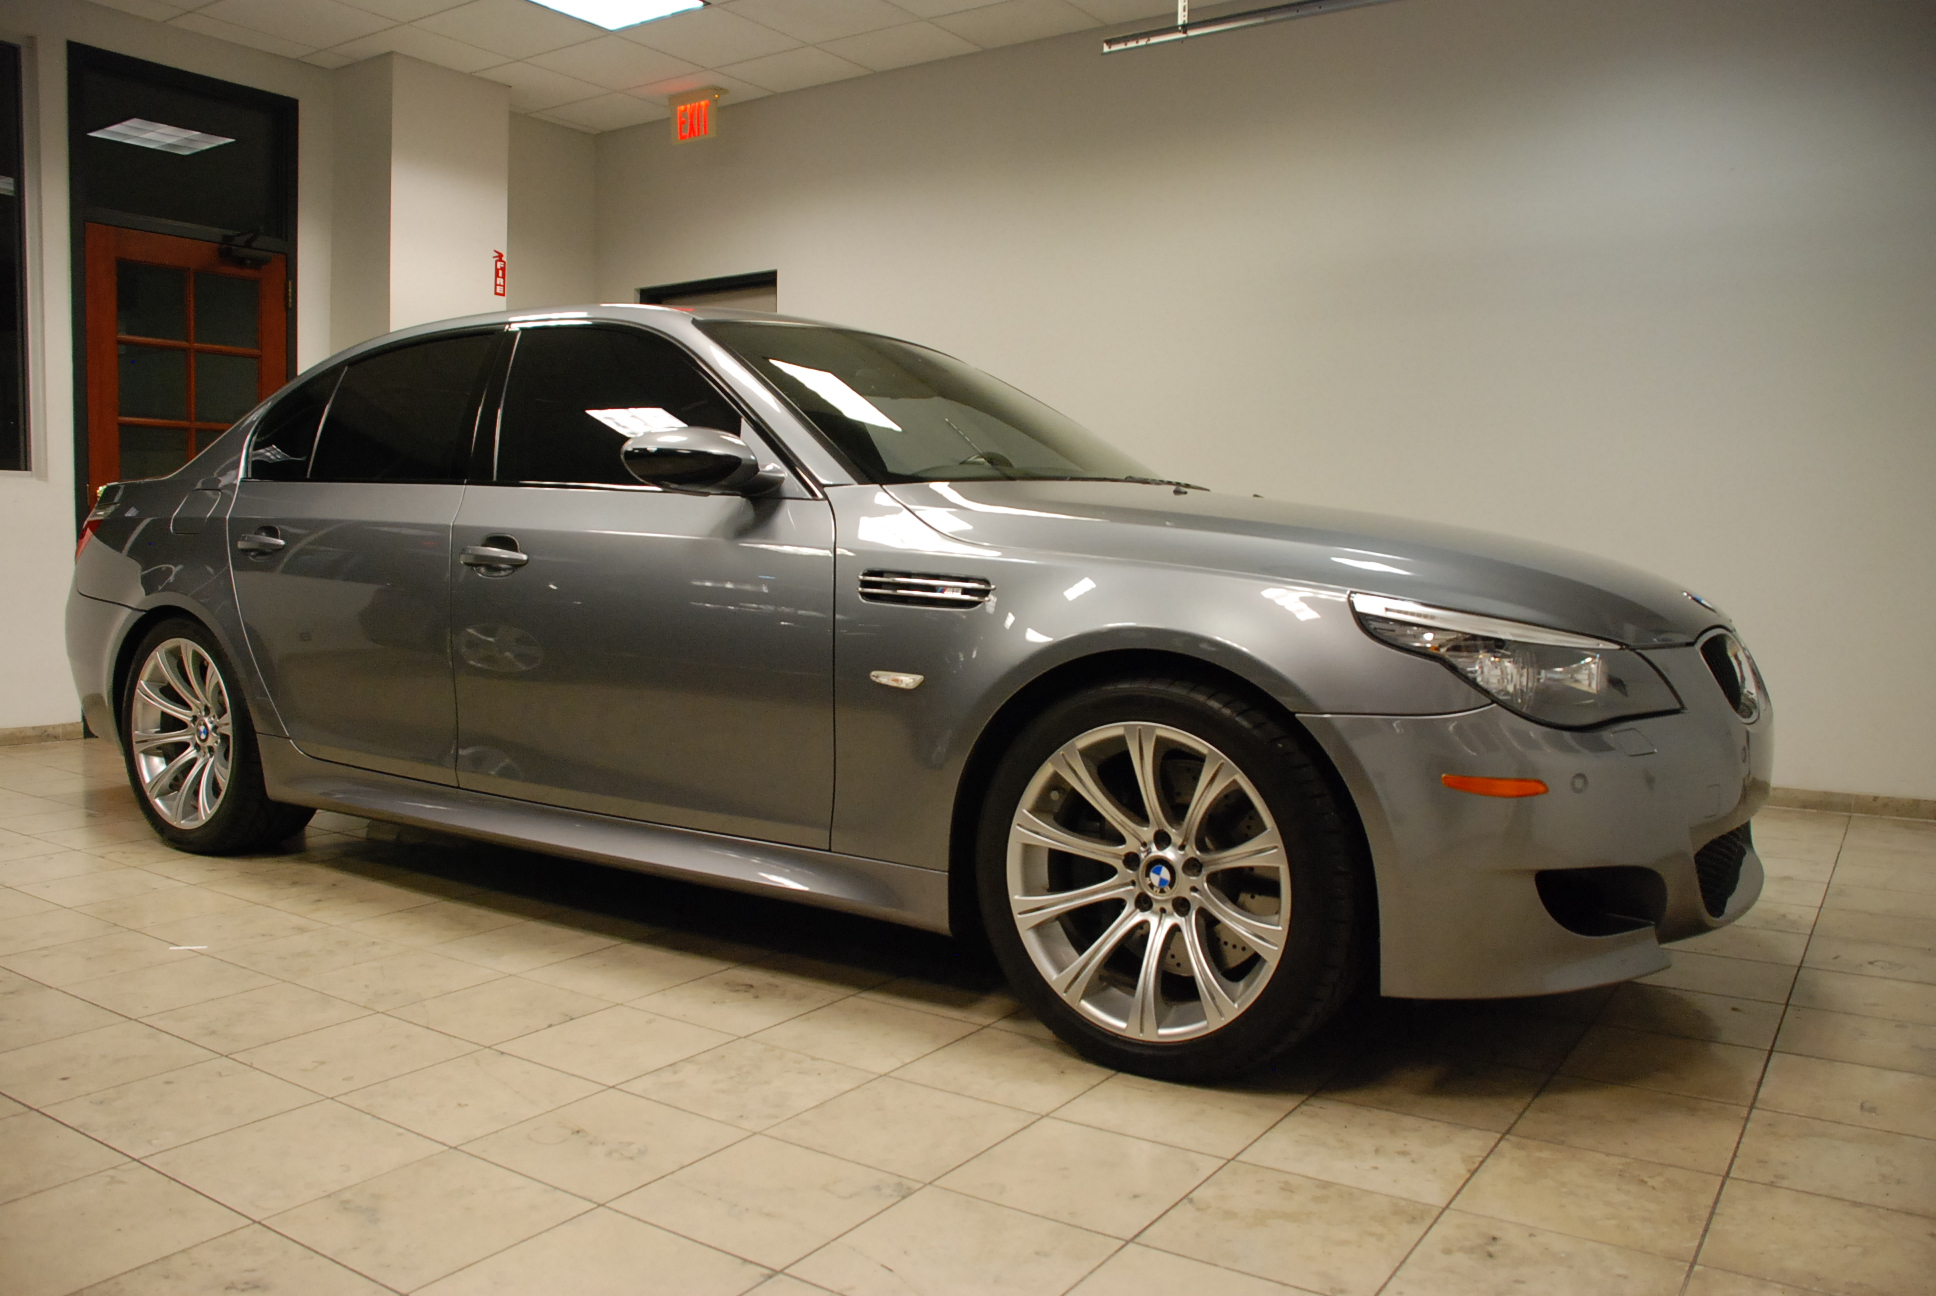 2008 bmw e60 m5 for sale!!!-dsc_0005.jpg